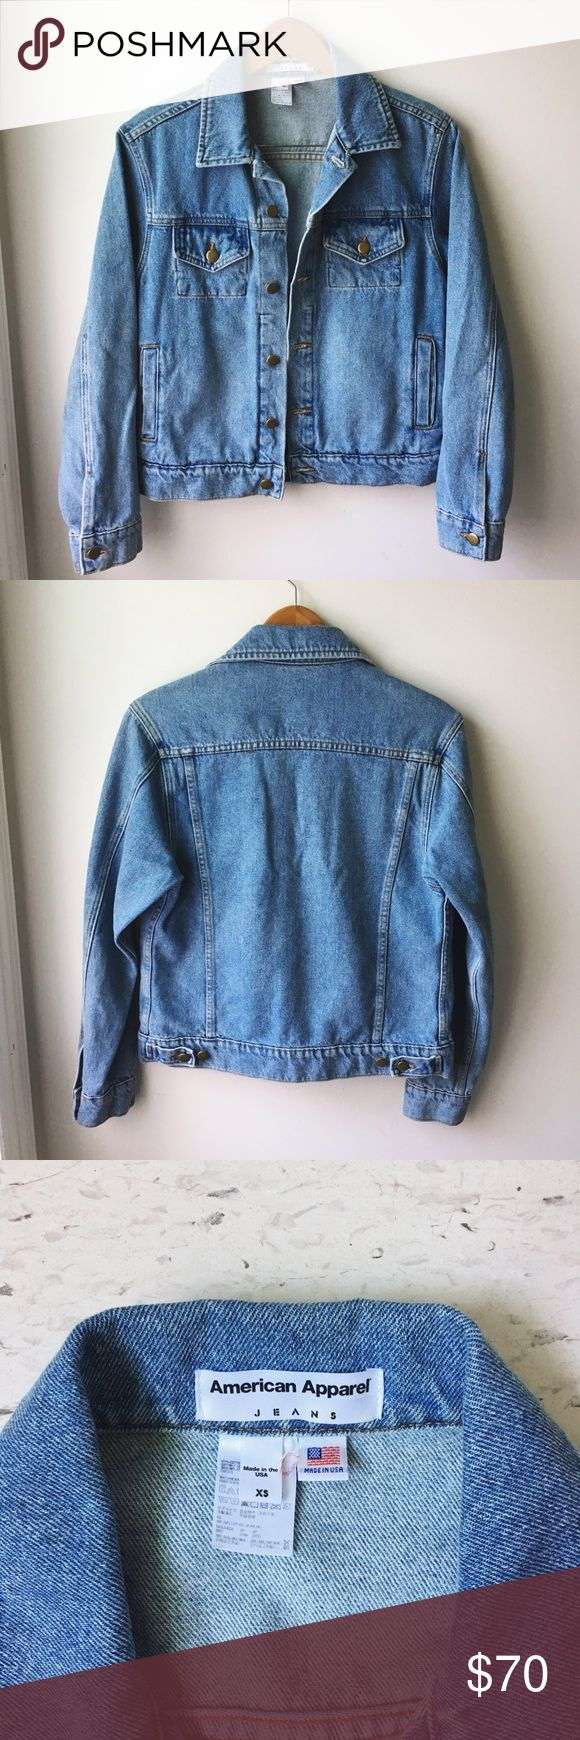 American Apparel Denim Jacket Unisex Denim jacket from American Apparel. In medium wash color. No longer available from American Apparel~ Good condition, only flaw is some yellow-ish marks on one sleeve (refer to last pic). Will consider offers. American Apparel Jackets & Coats Jean Jackets